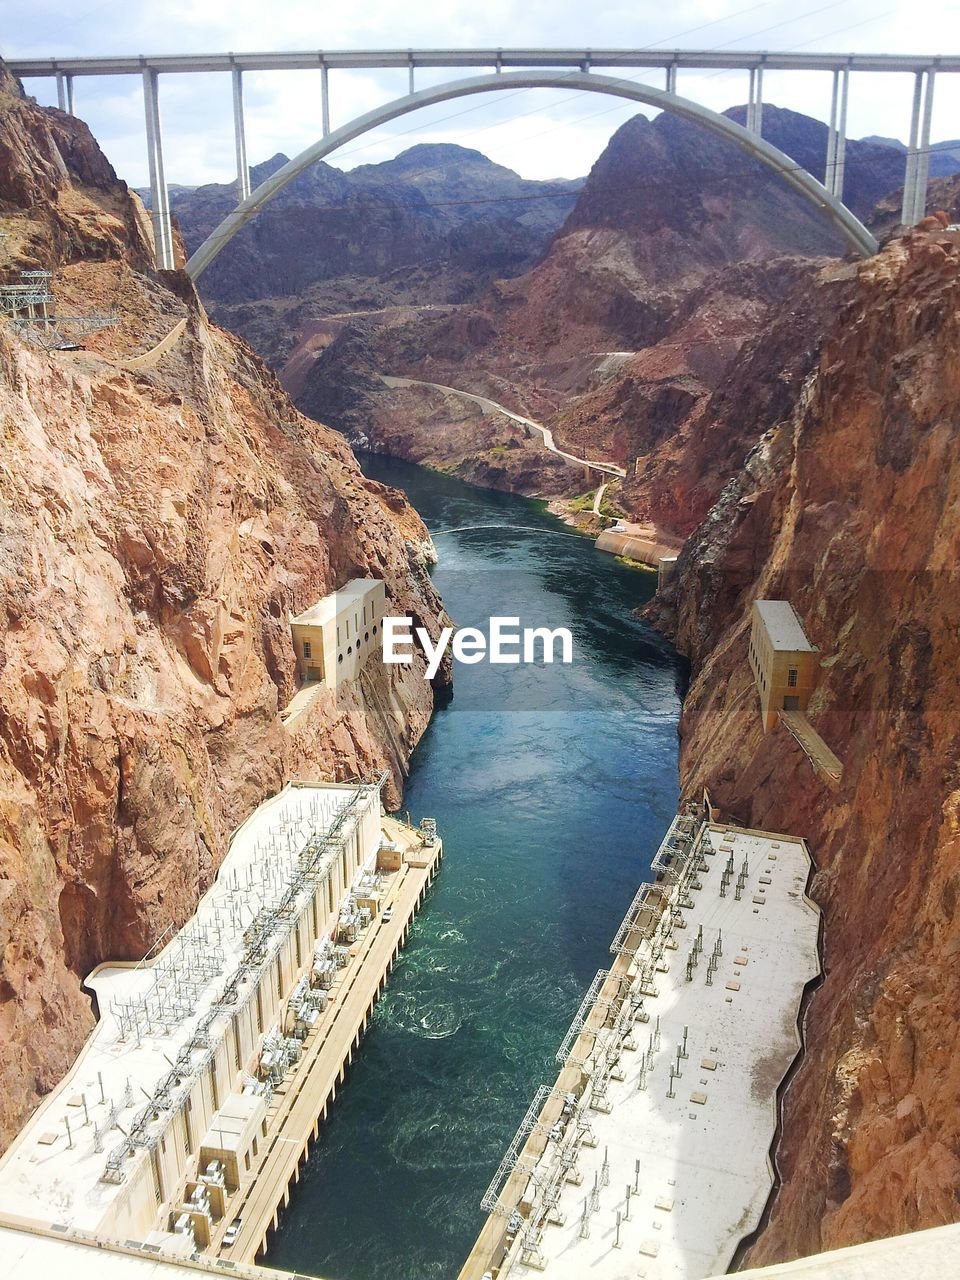 Overhead view of hoover dam